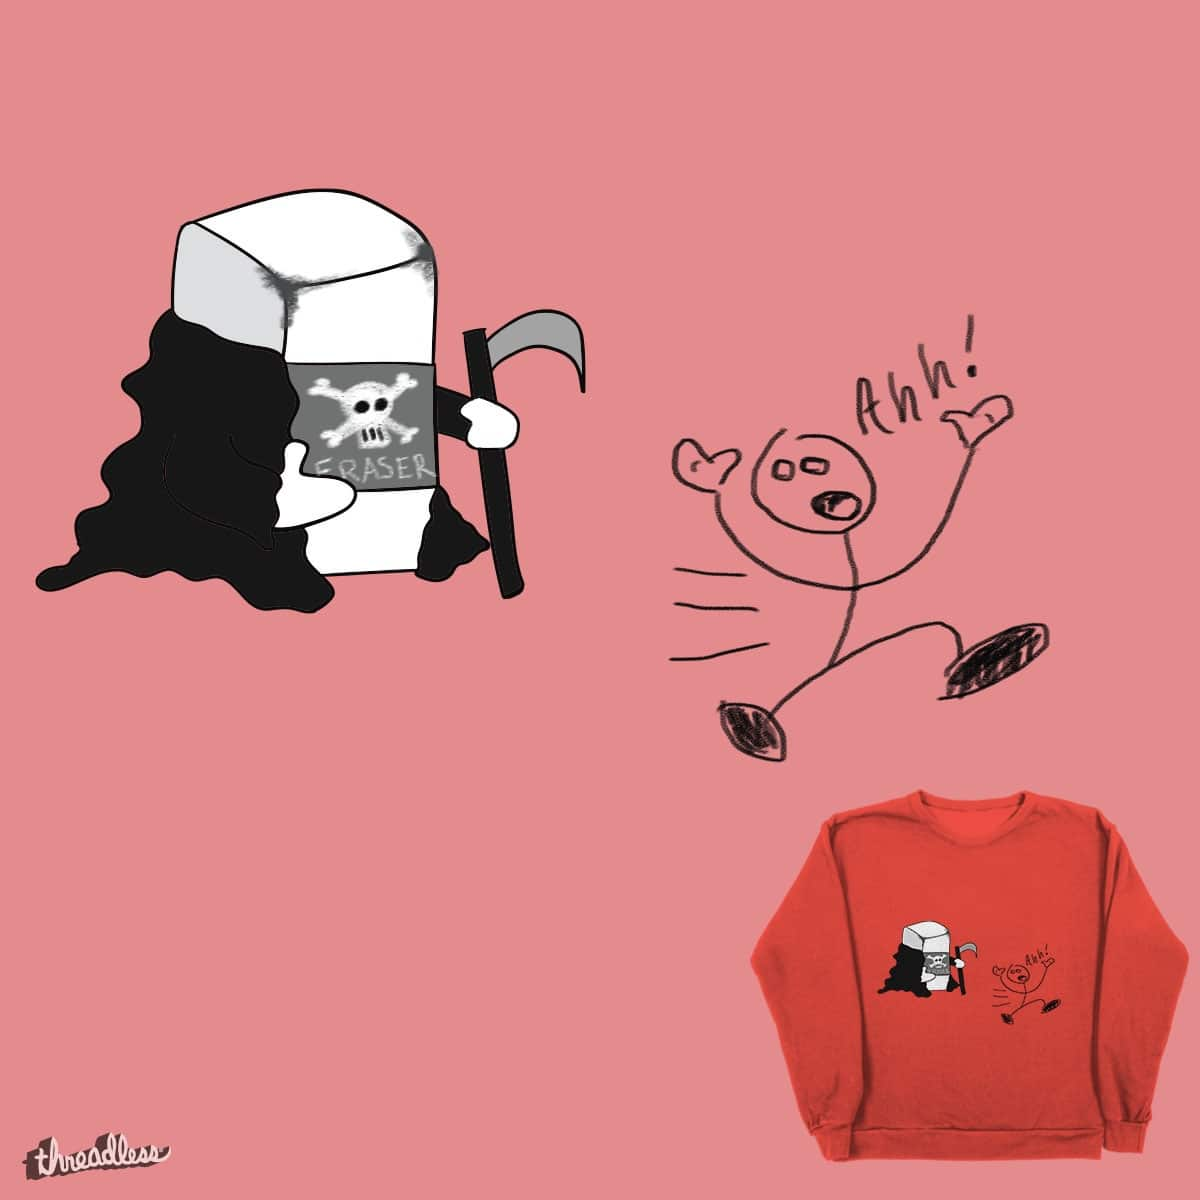 The Eraser by Freddy Sanchez on Threadless